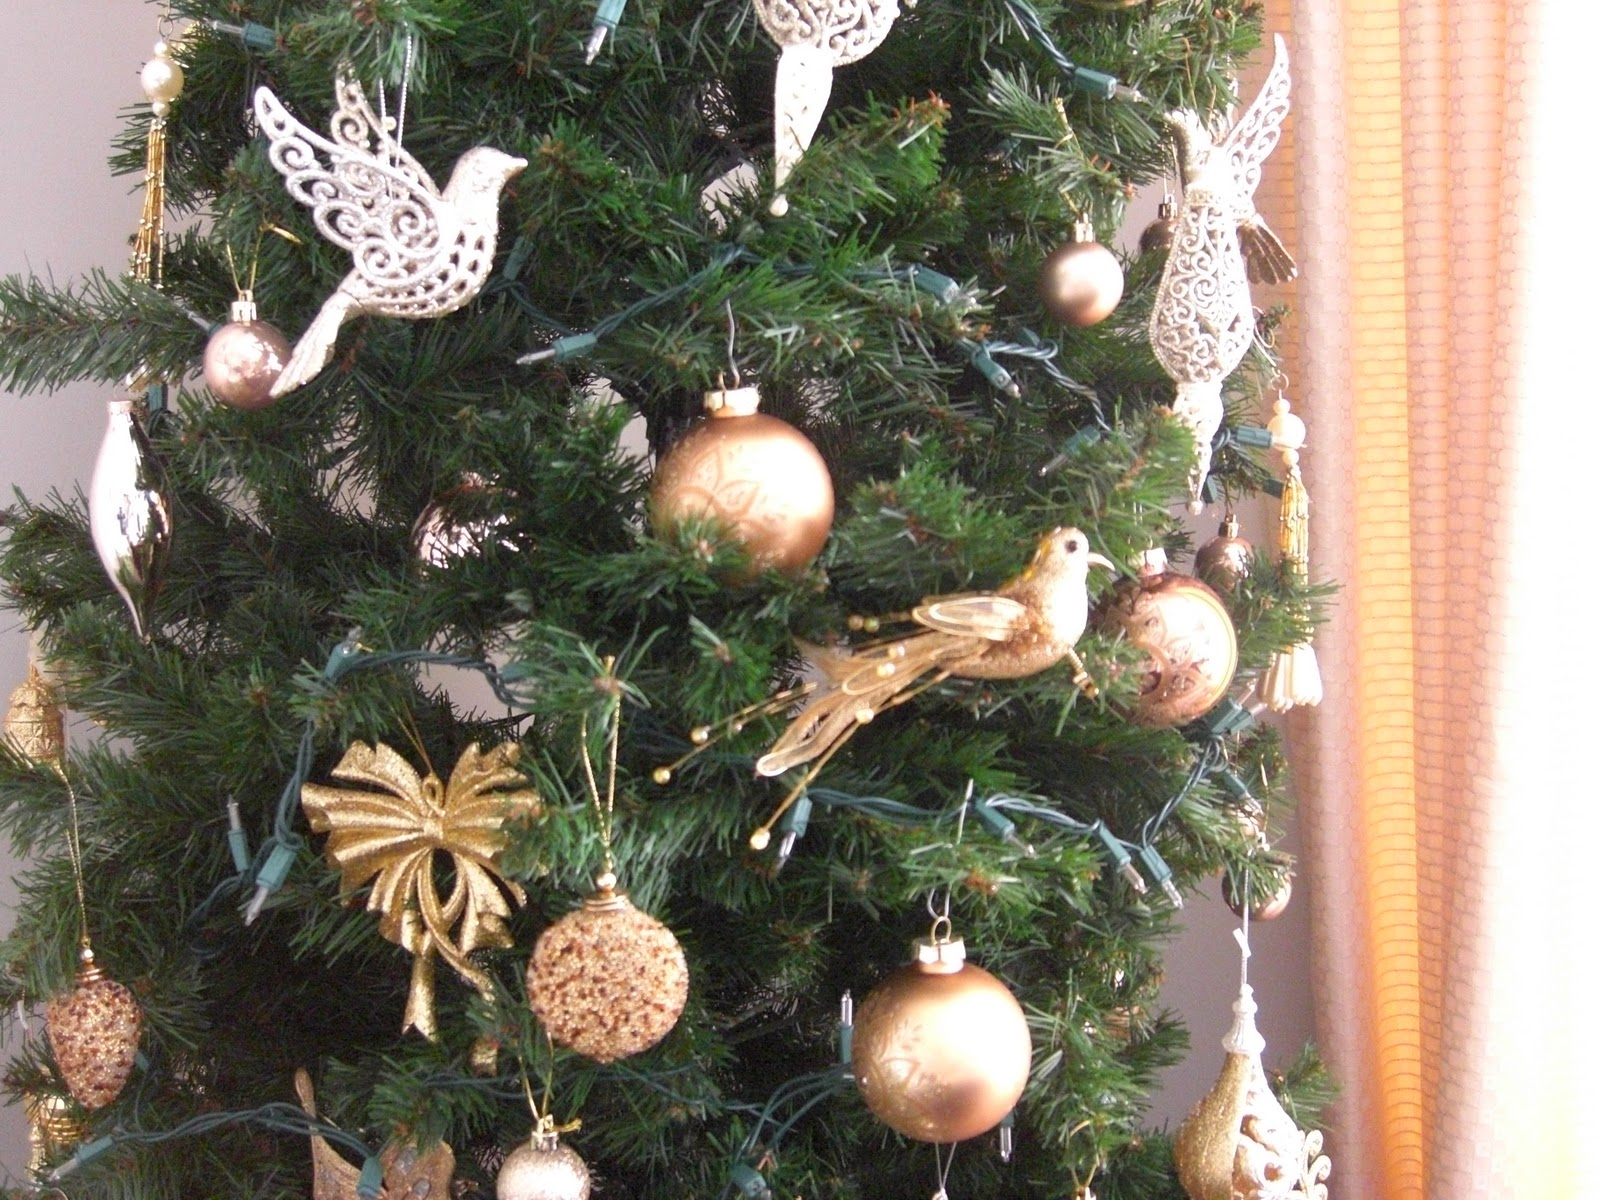 here is a closer look of the decorations in their 2nd christmas tree using golden birds balls and other beautiful golden trinkets